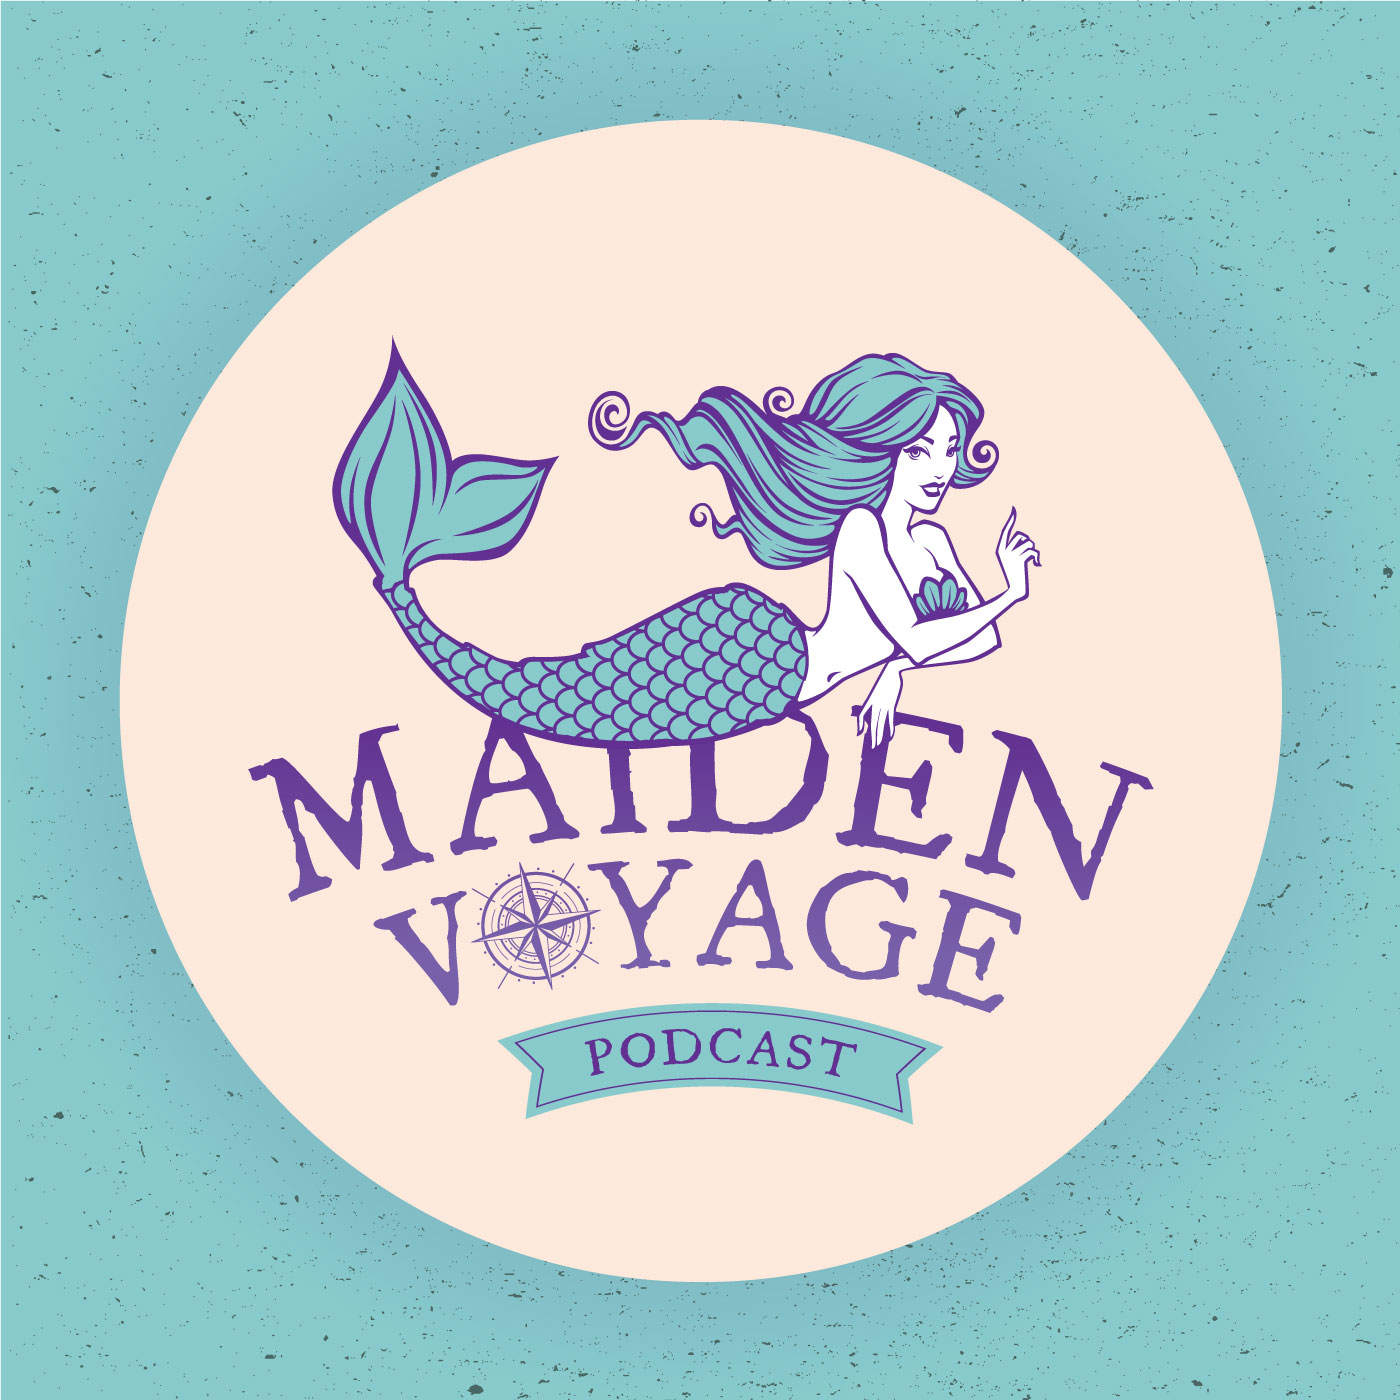 MaidenVoyage-PodcastCover